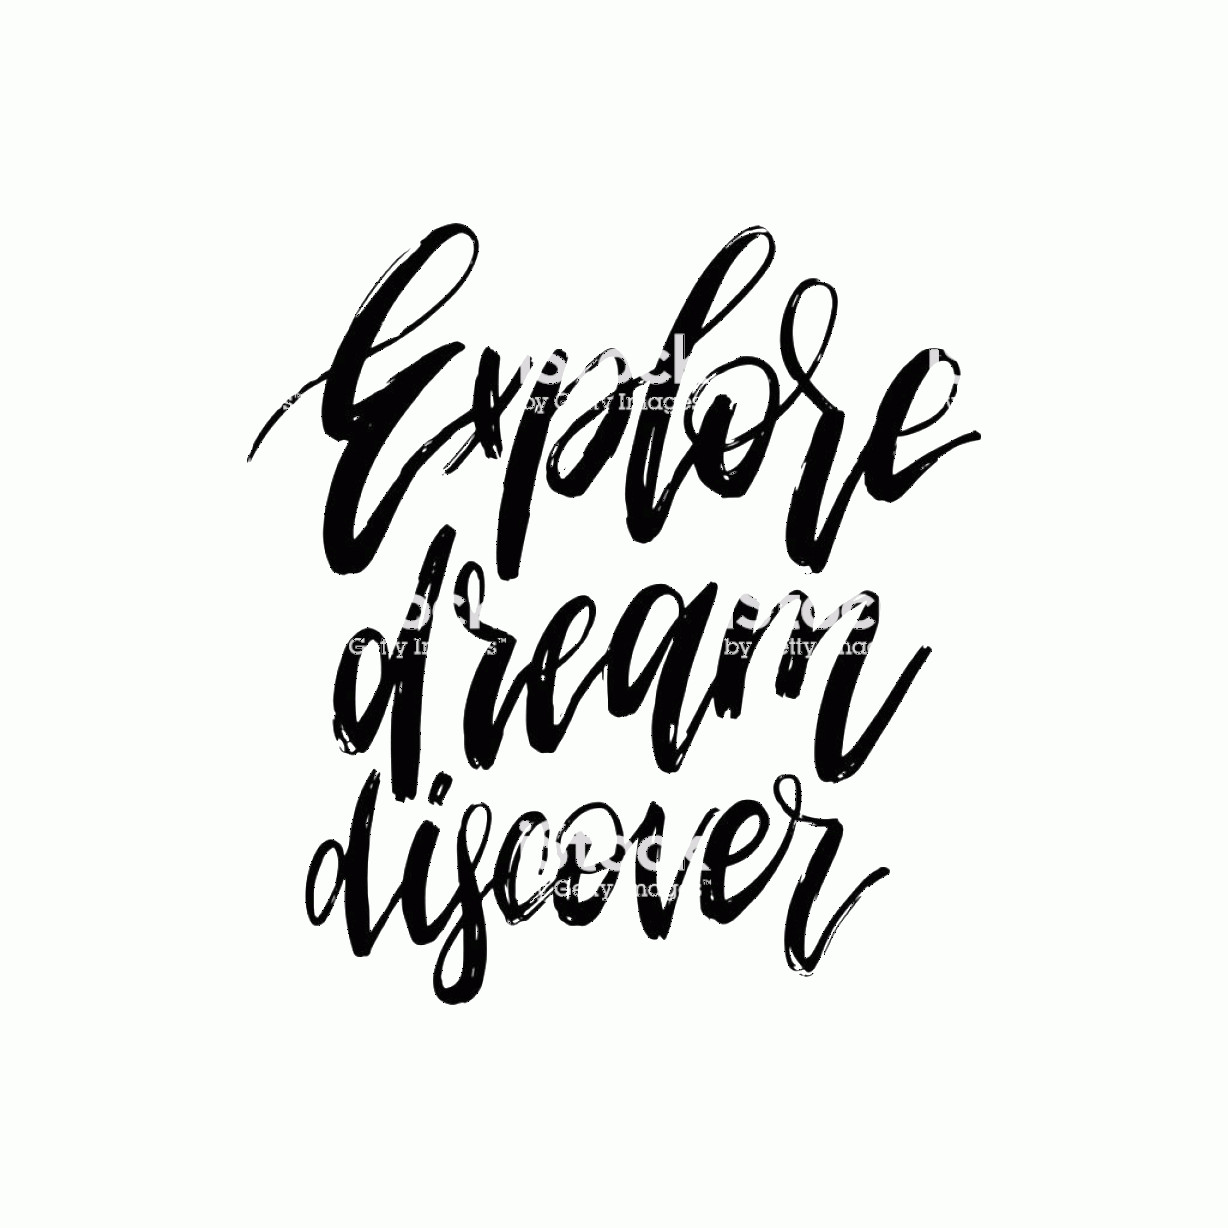 Discover Card Logo Vector: Hand Lettering Explore Dream Discover Vector Calligraphy Illustration For Gm